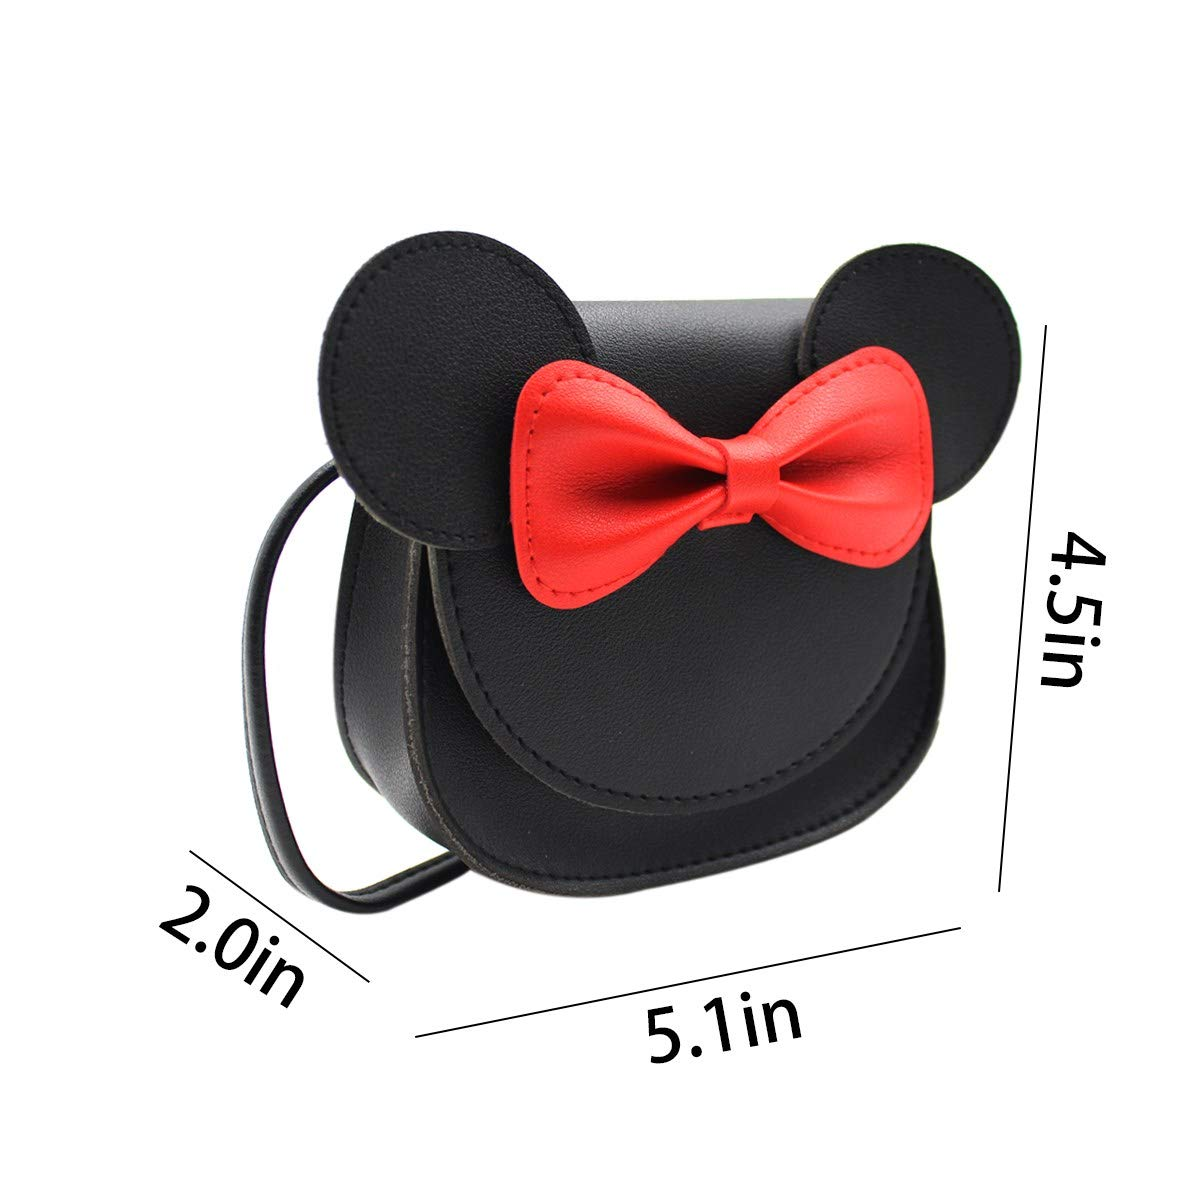 ZGMYC Kids Toddlers Bowknot Crossbody Purse Small Shoulder Bag Satchel with Cartoon Ears by ZGMYC (Image #7)